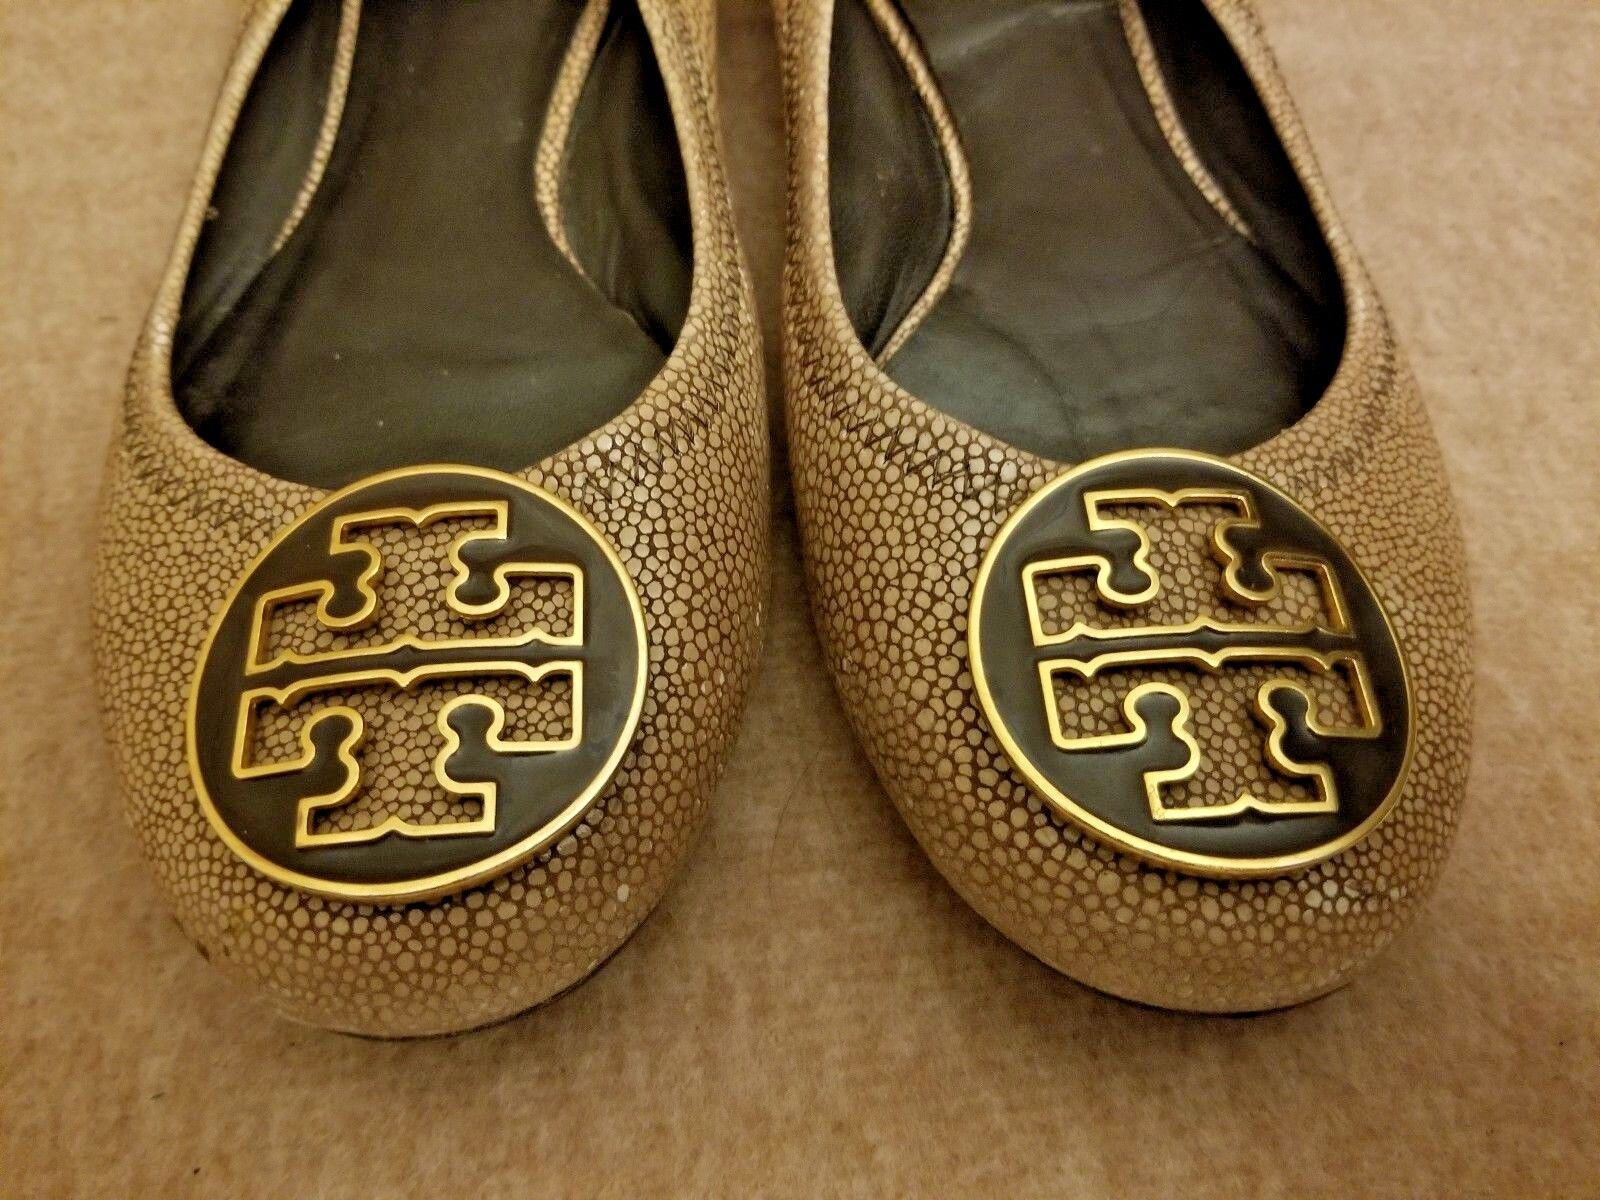 Tory Burch Women Reva Leather Tumbled Brown Big Logo Ballet Flats shoes Size 7 M